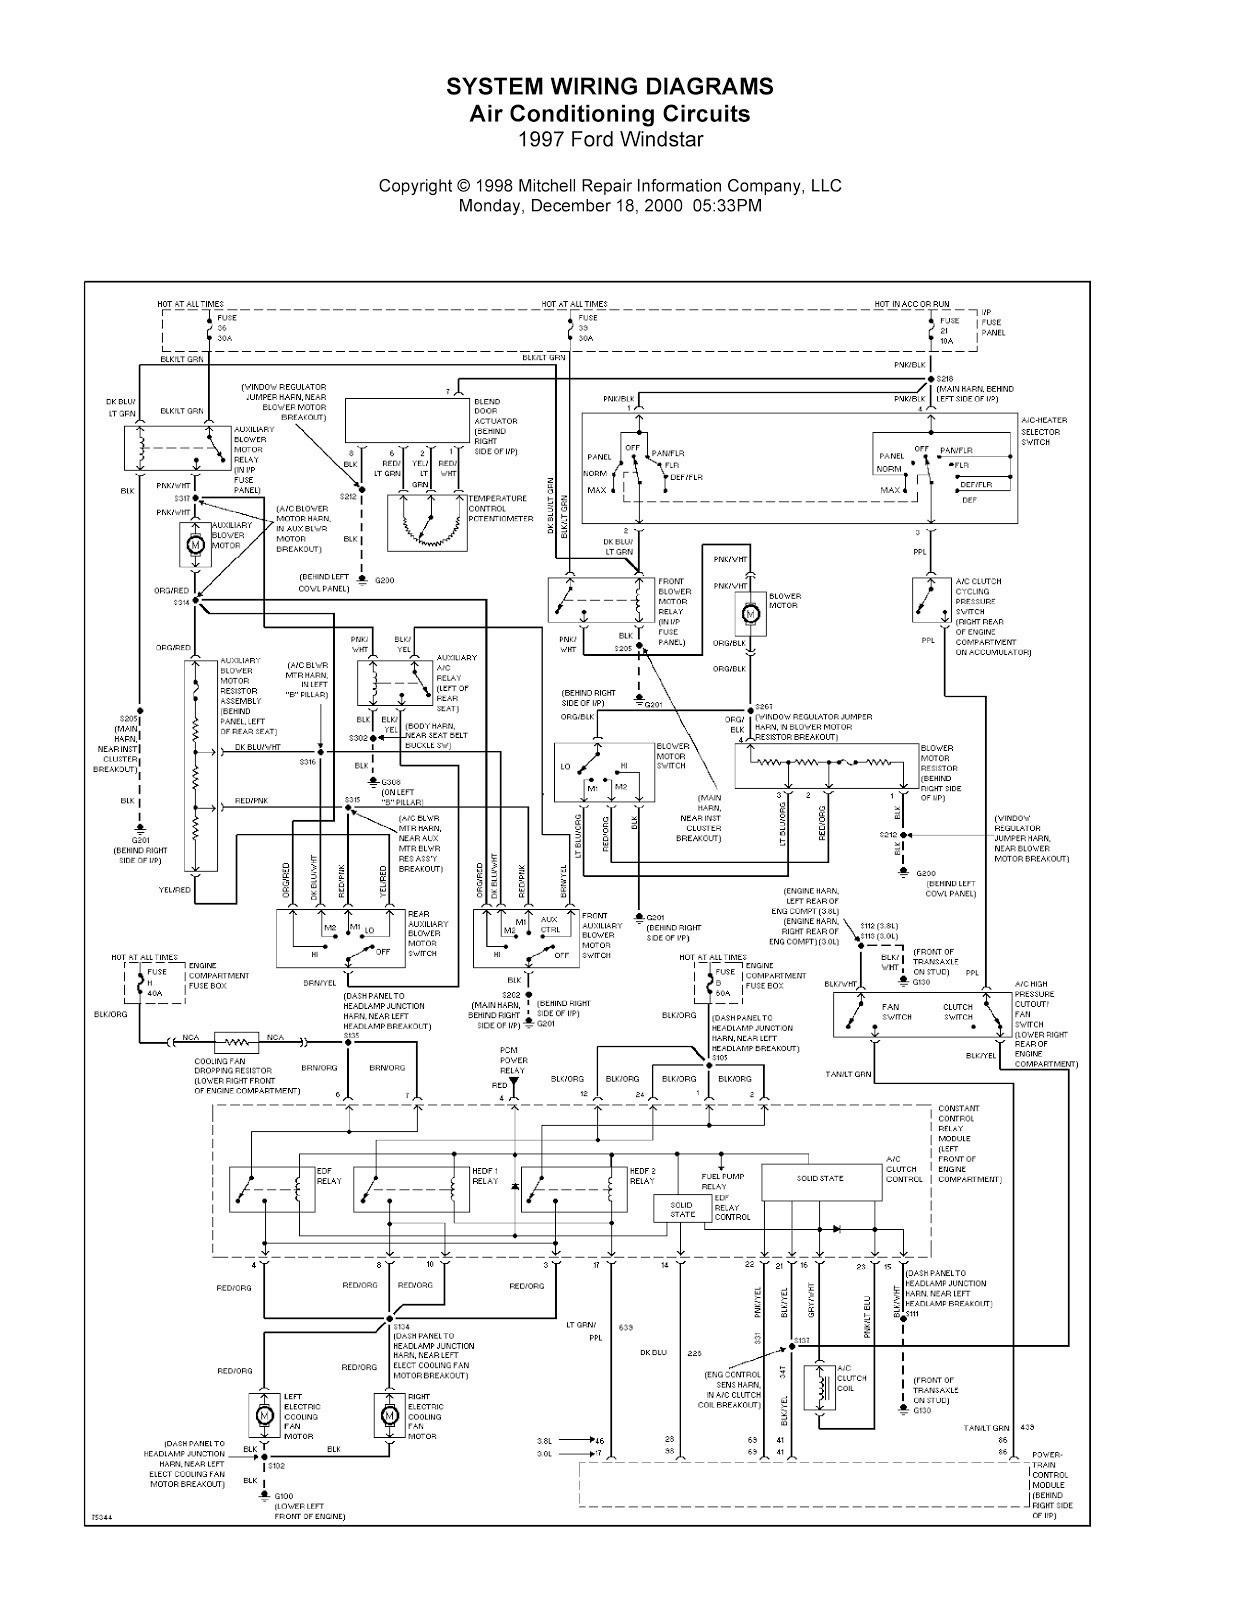 install 02 ford explorer cooling system diagram